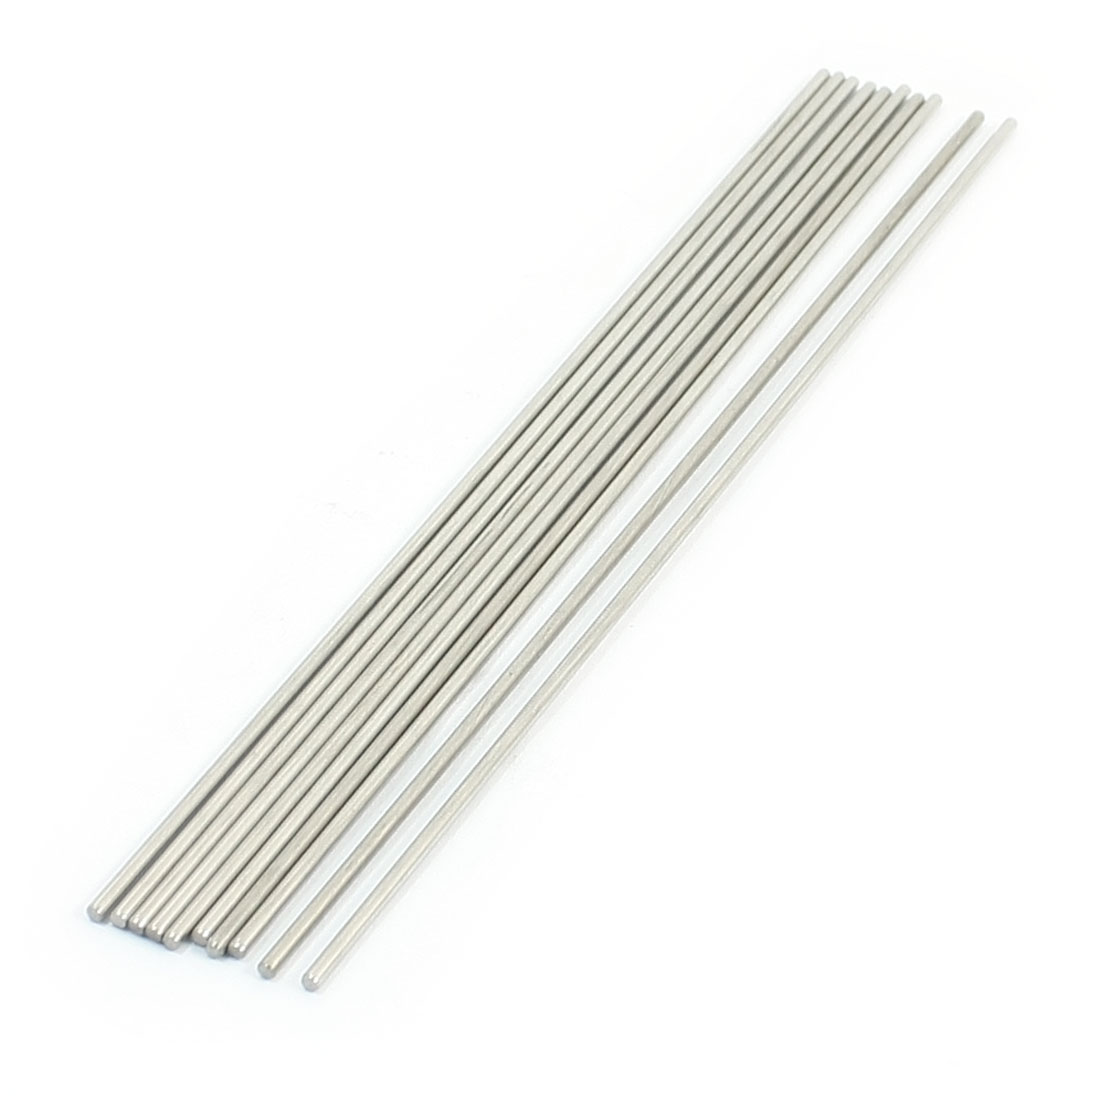 10Pcs Stainless Steel Machinery Parts Component Round Bar 180x2mm